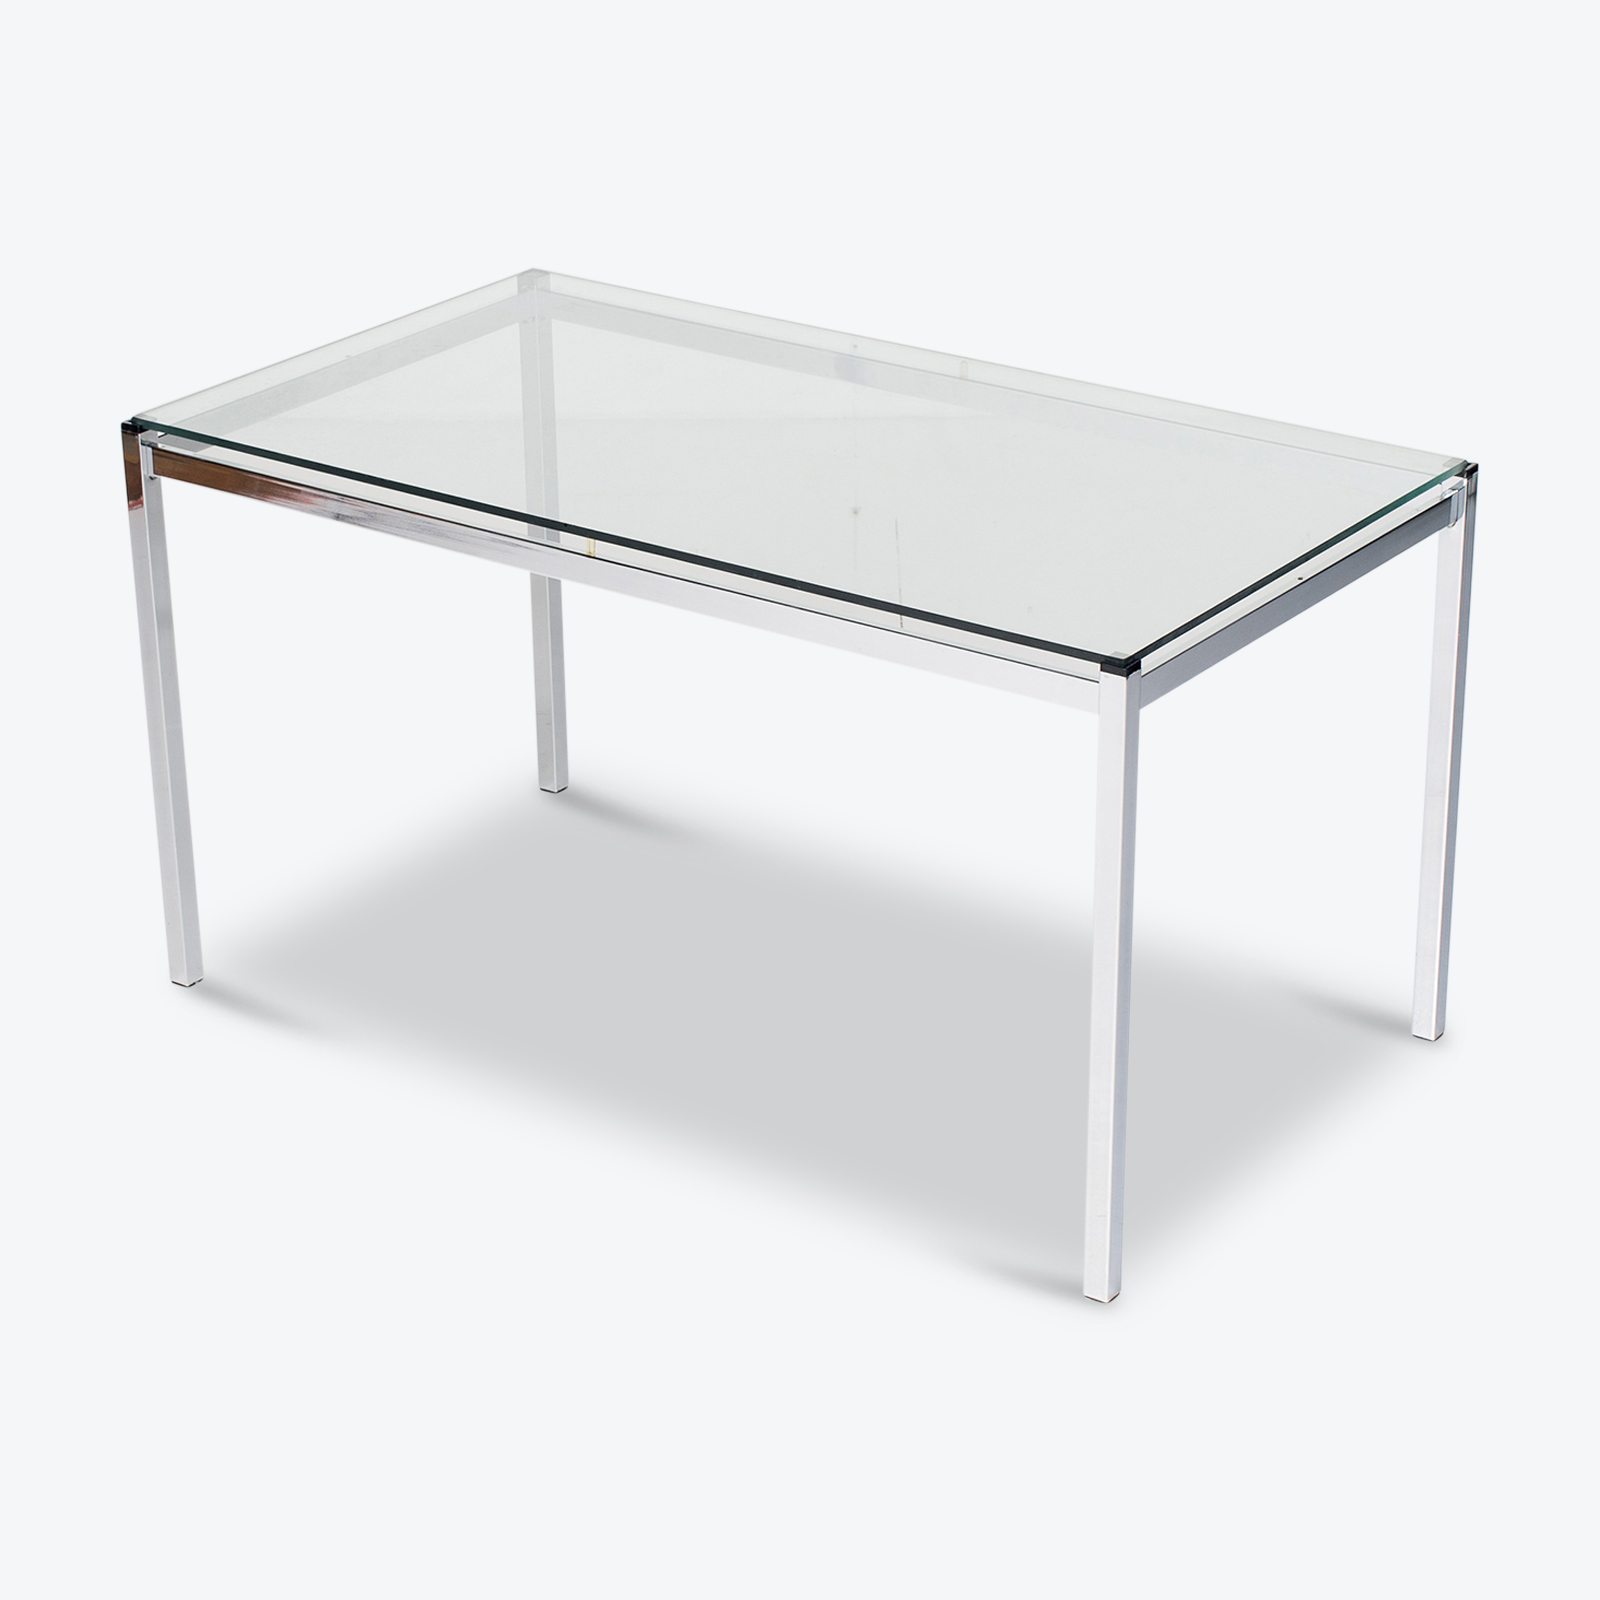 Dining Table In Glass And Chrome, 1970s, The Netherlands Hero